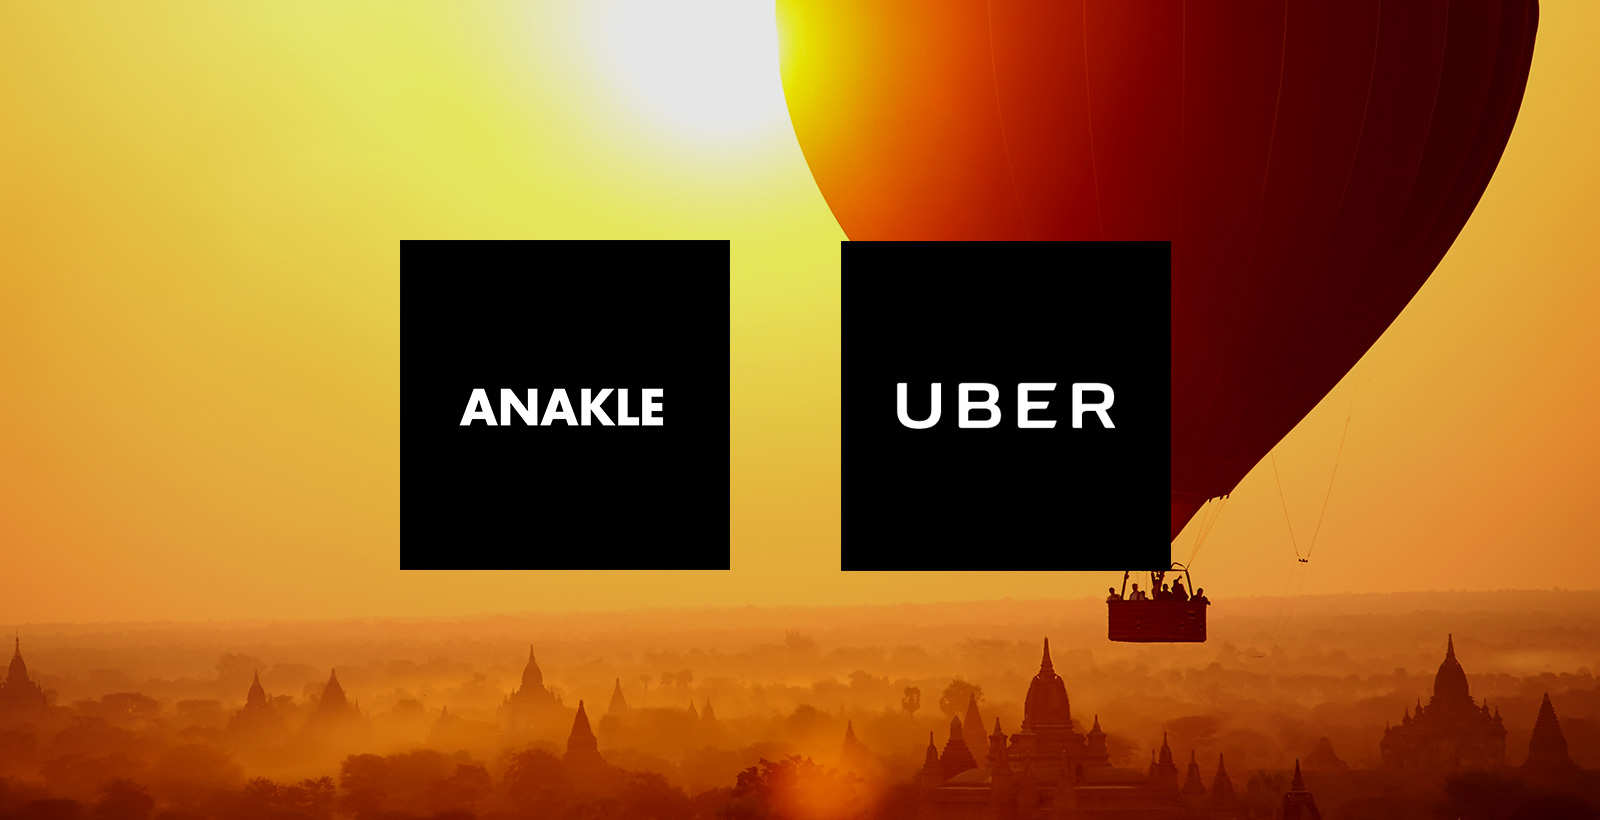 The new Uber logo looks just like the Anakle logo